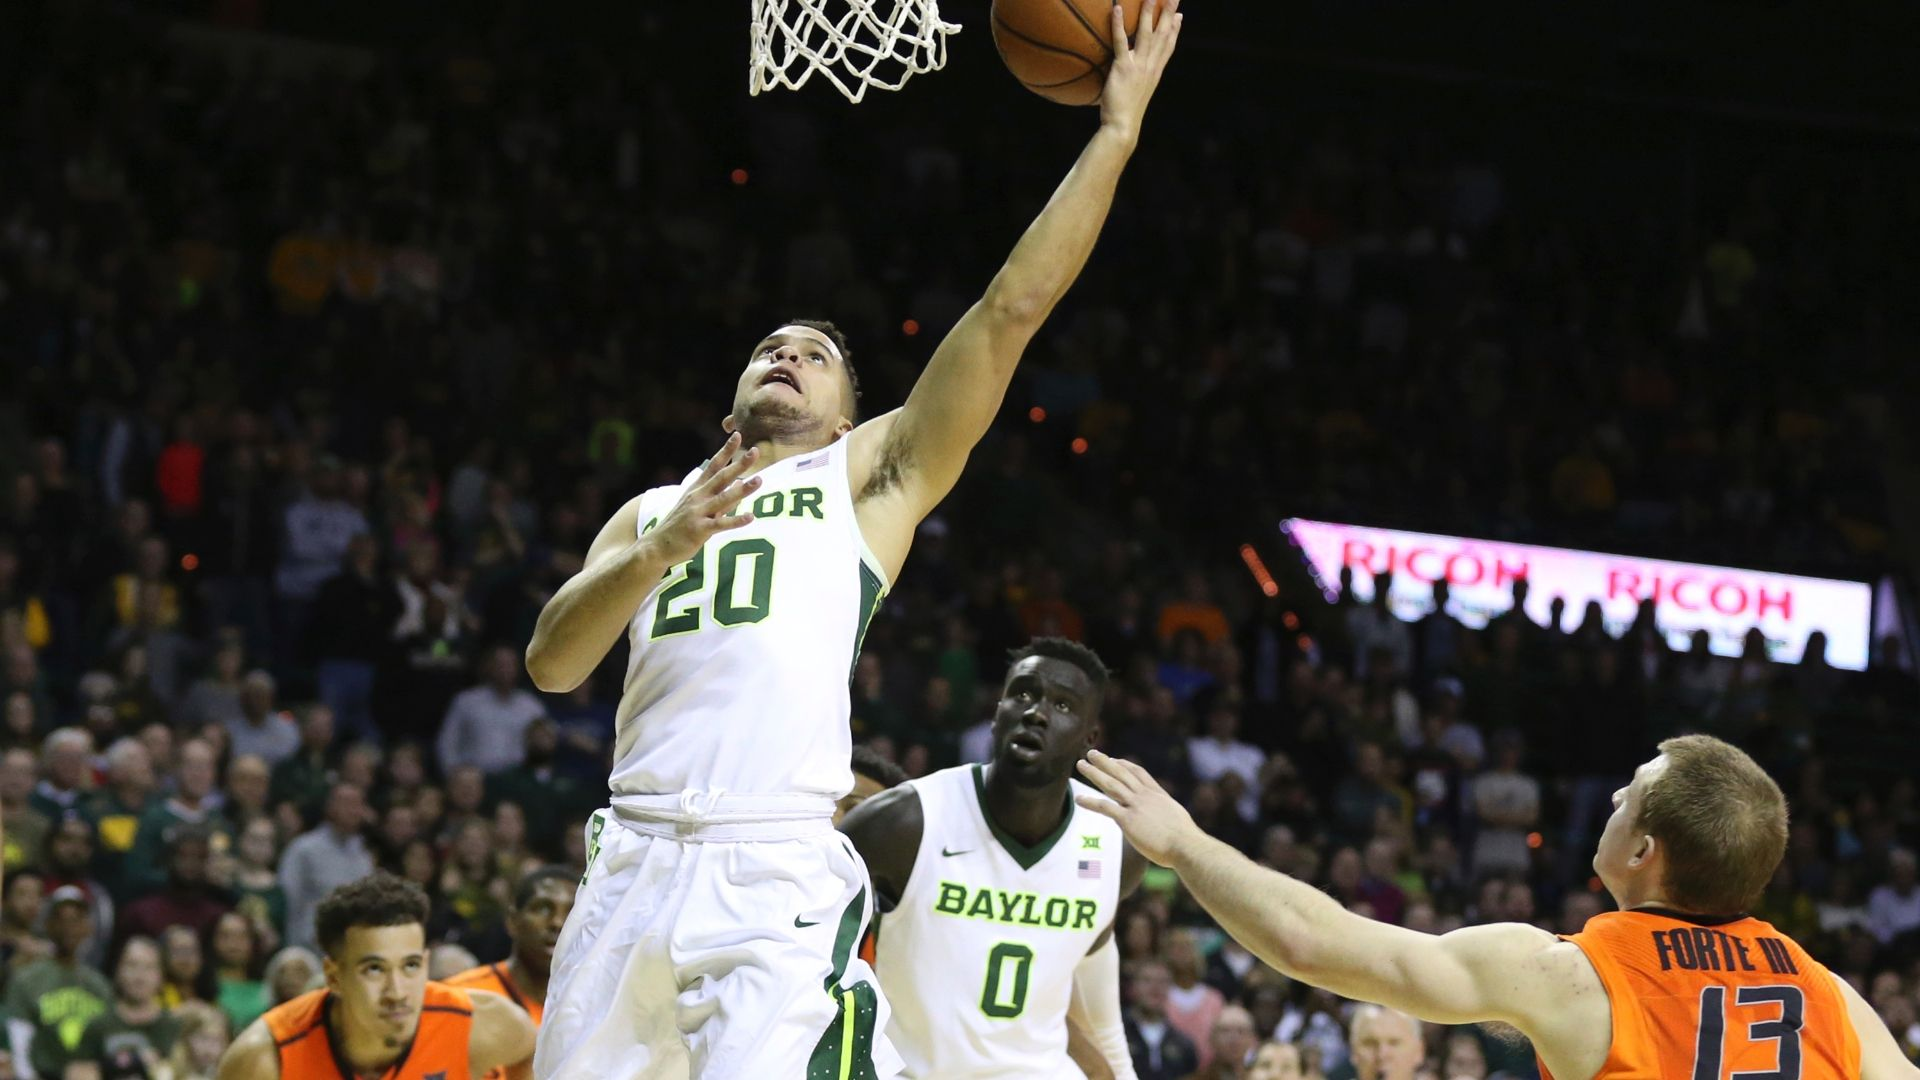 https://secure.espncdn.com/combiner/i?img=/media/motion/2017/0107/dm_170107_NCB_Oklahoma_State_v_Baylor_Highlight/dm_170107_NCB_Oklahoma_State_v_Baylor_Highlight.jpg